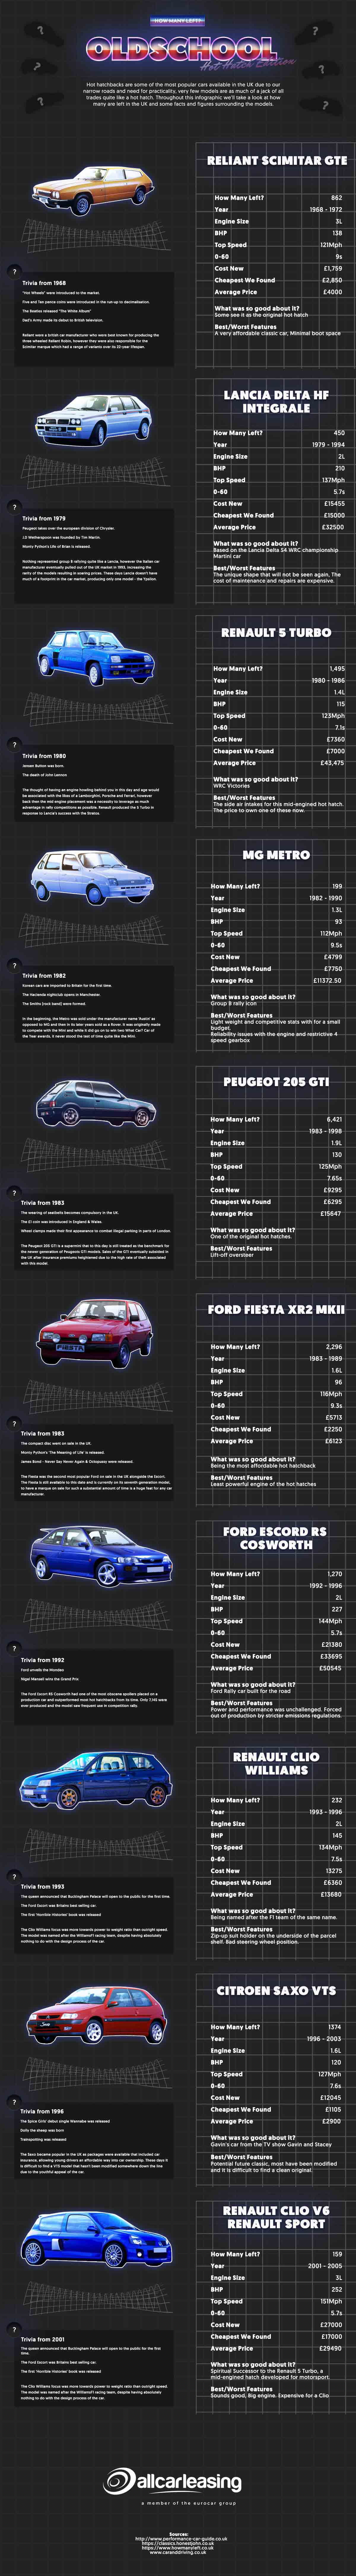 Hot Hatches - Where Are They Now?